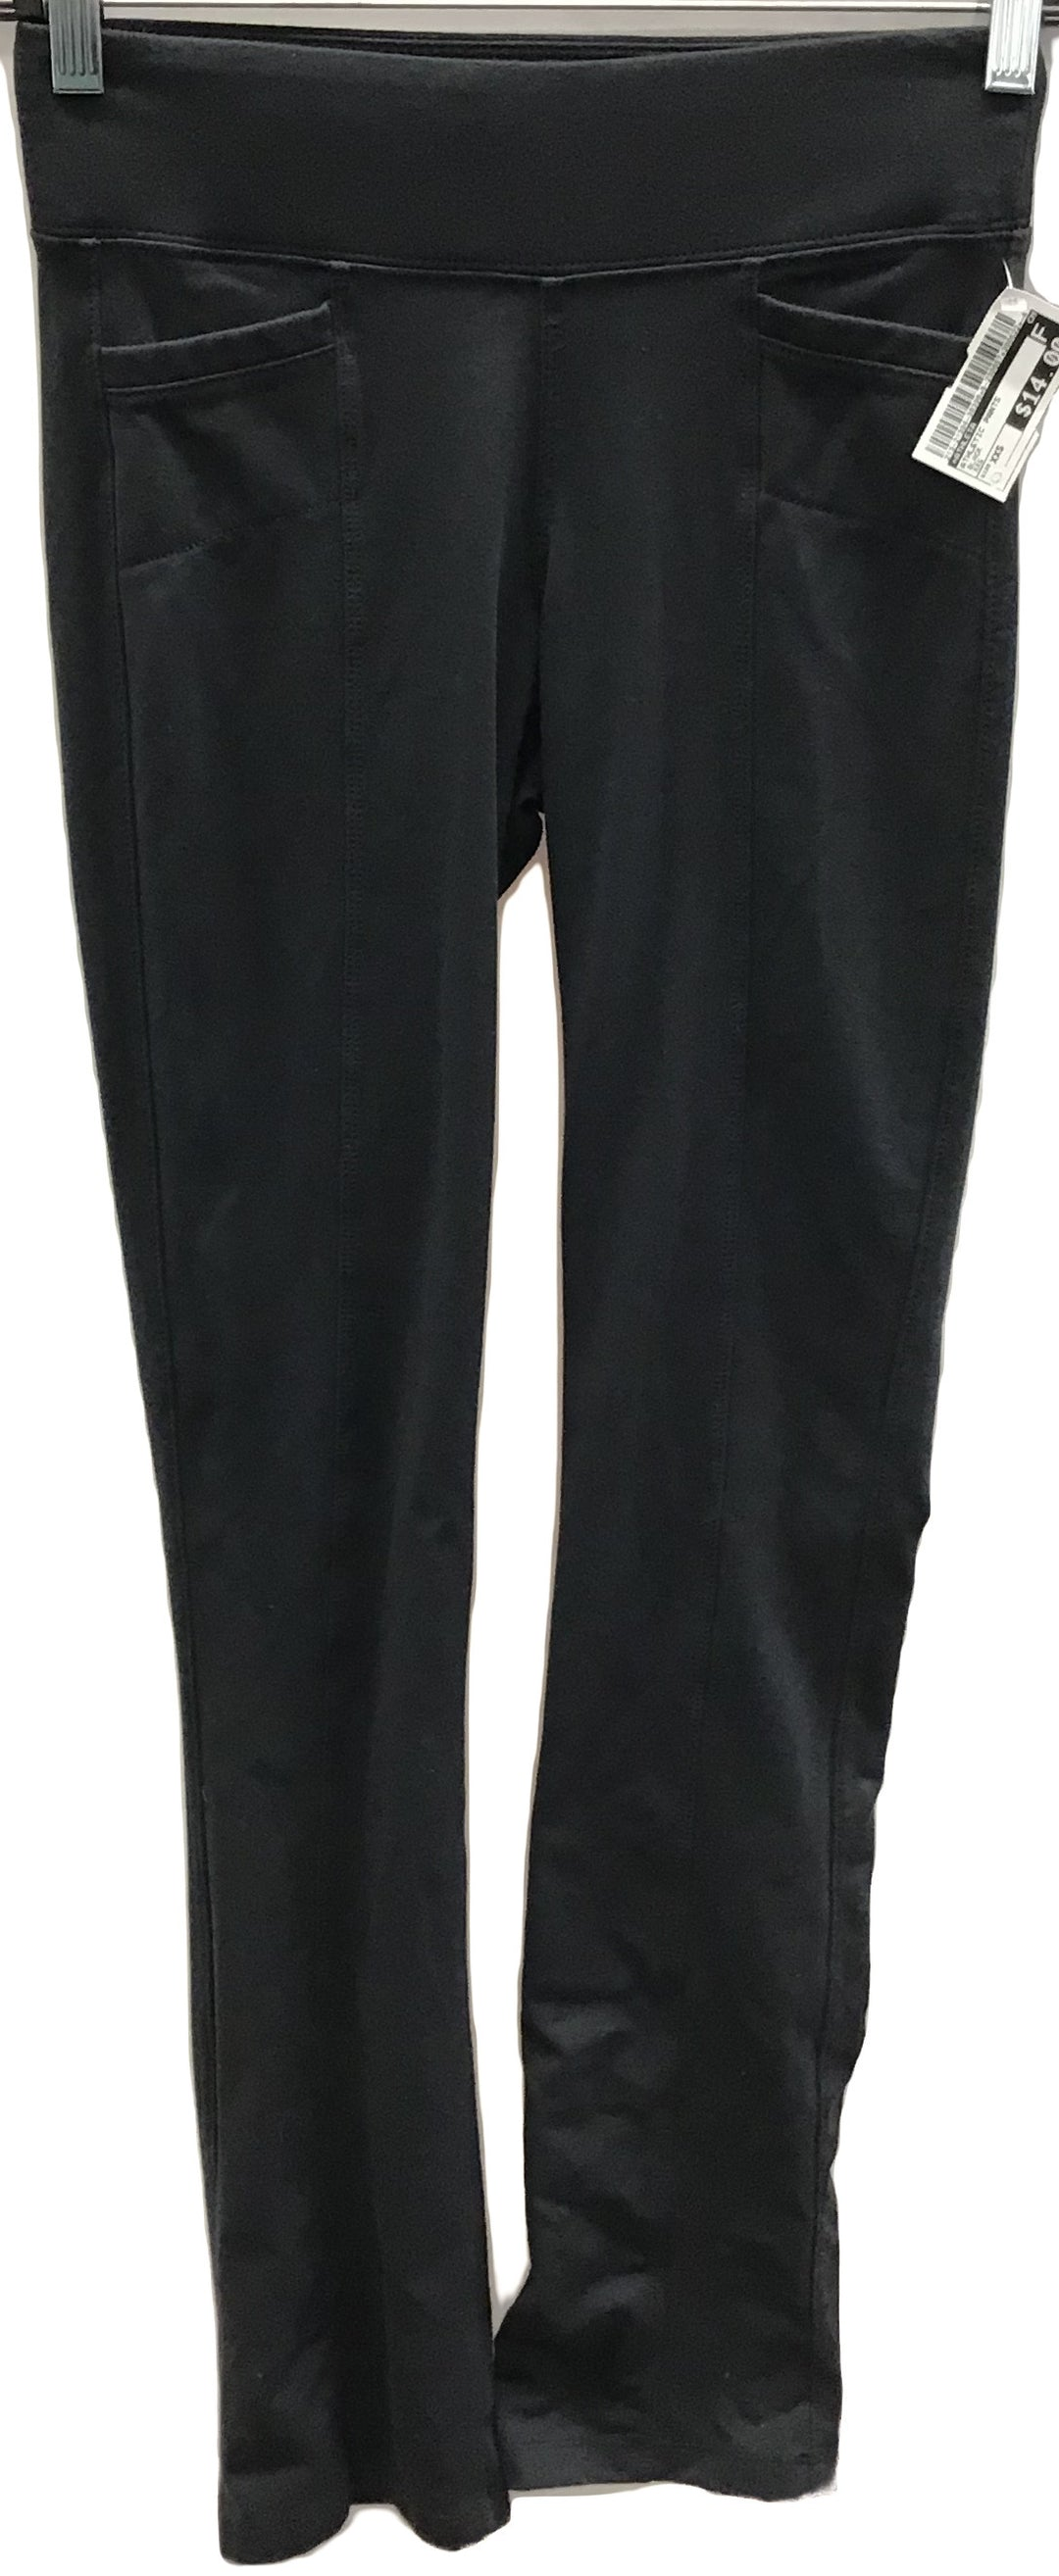 Primary Photo - BRAND: ATHLETA <BR>STYLE: ATHLETIC PANTS <BR>COLOR: BLACK <BR>SIZE: XXS <BR>SKU: 213-21394-38398